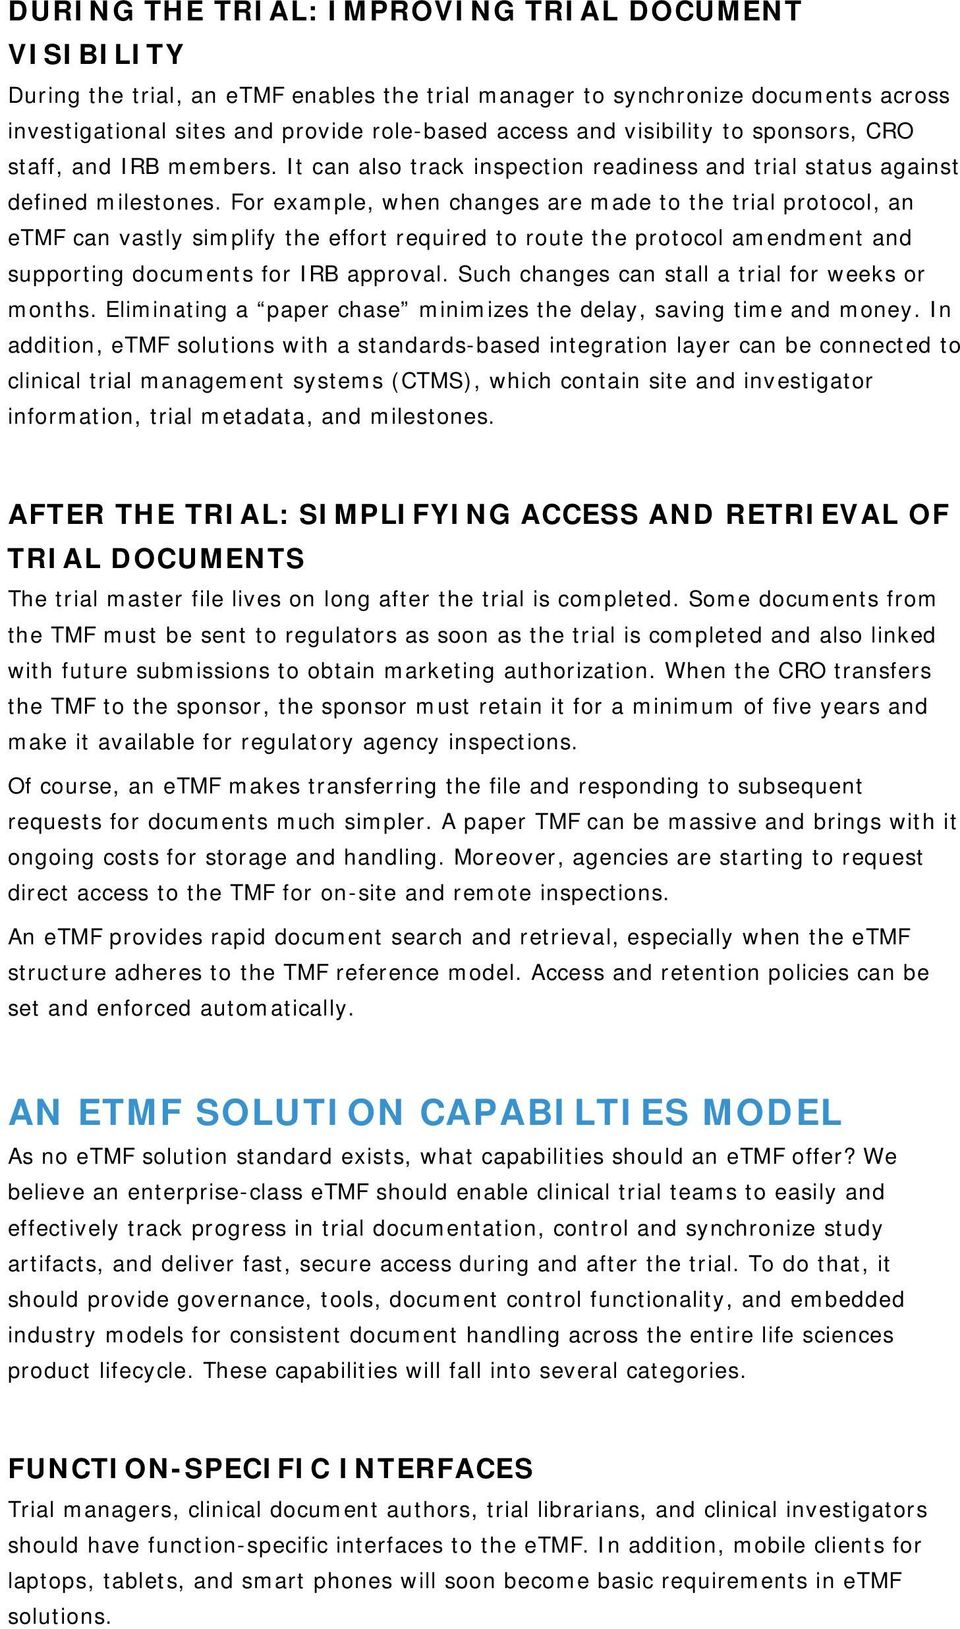 For example, when changes are made to the trial protocol, an etmf can vastly simplify the effort required to route the protocol amendment and supporting documents for IRB approval.